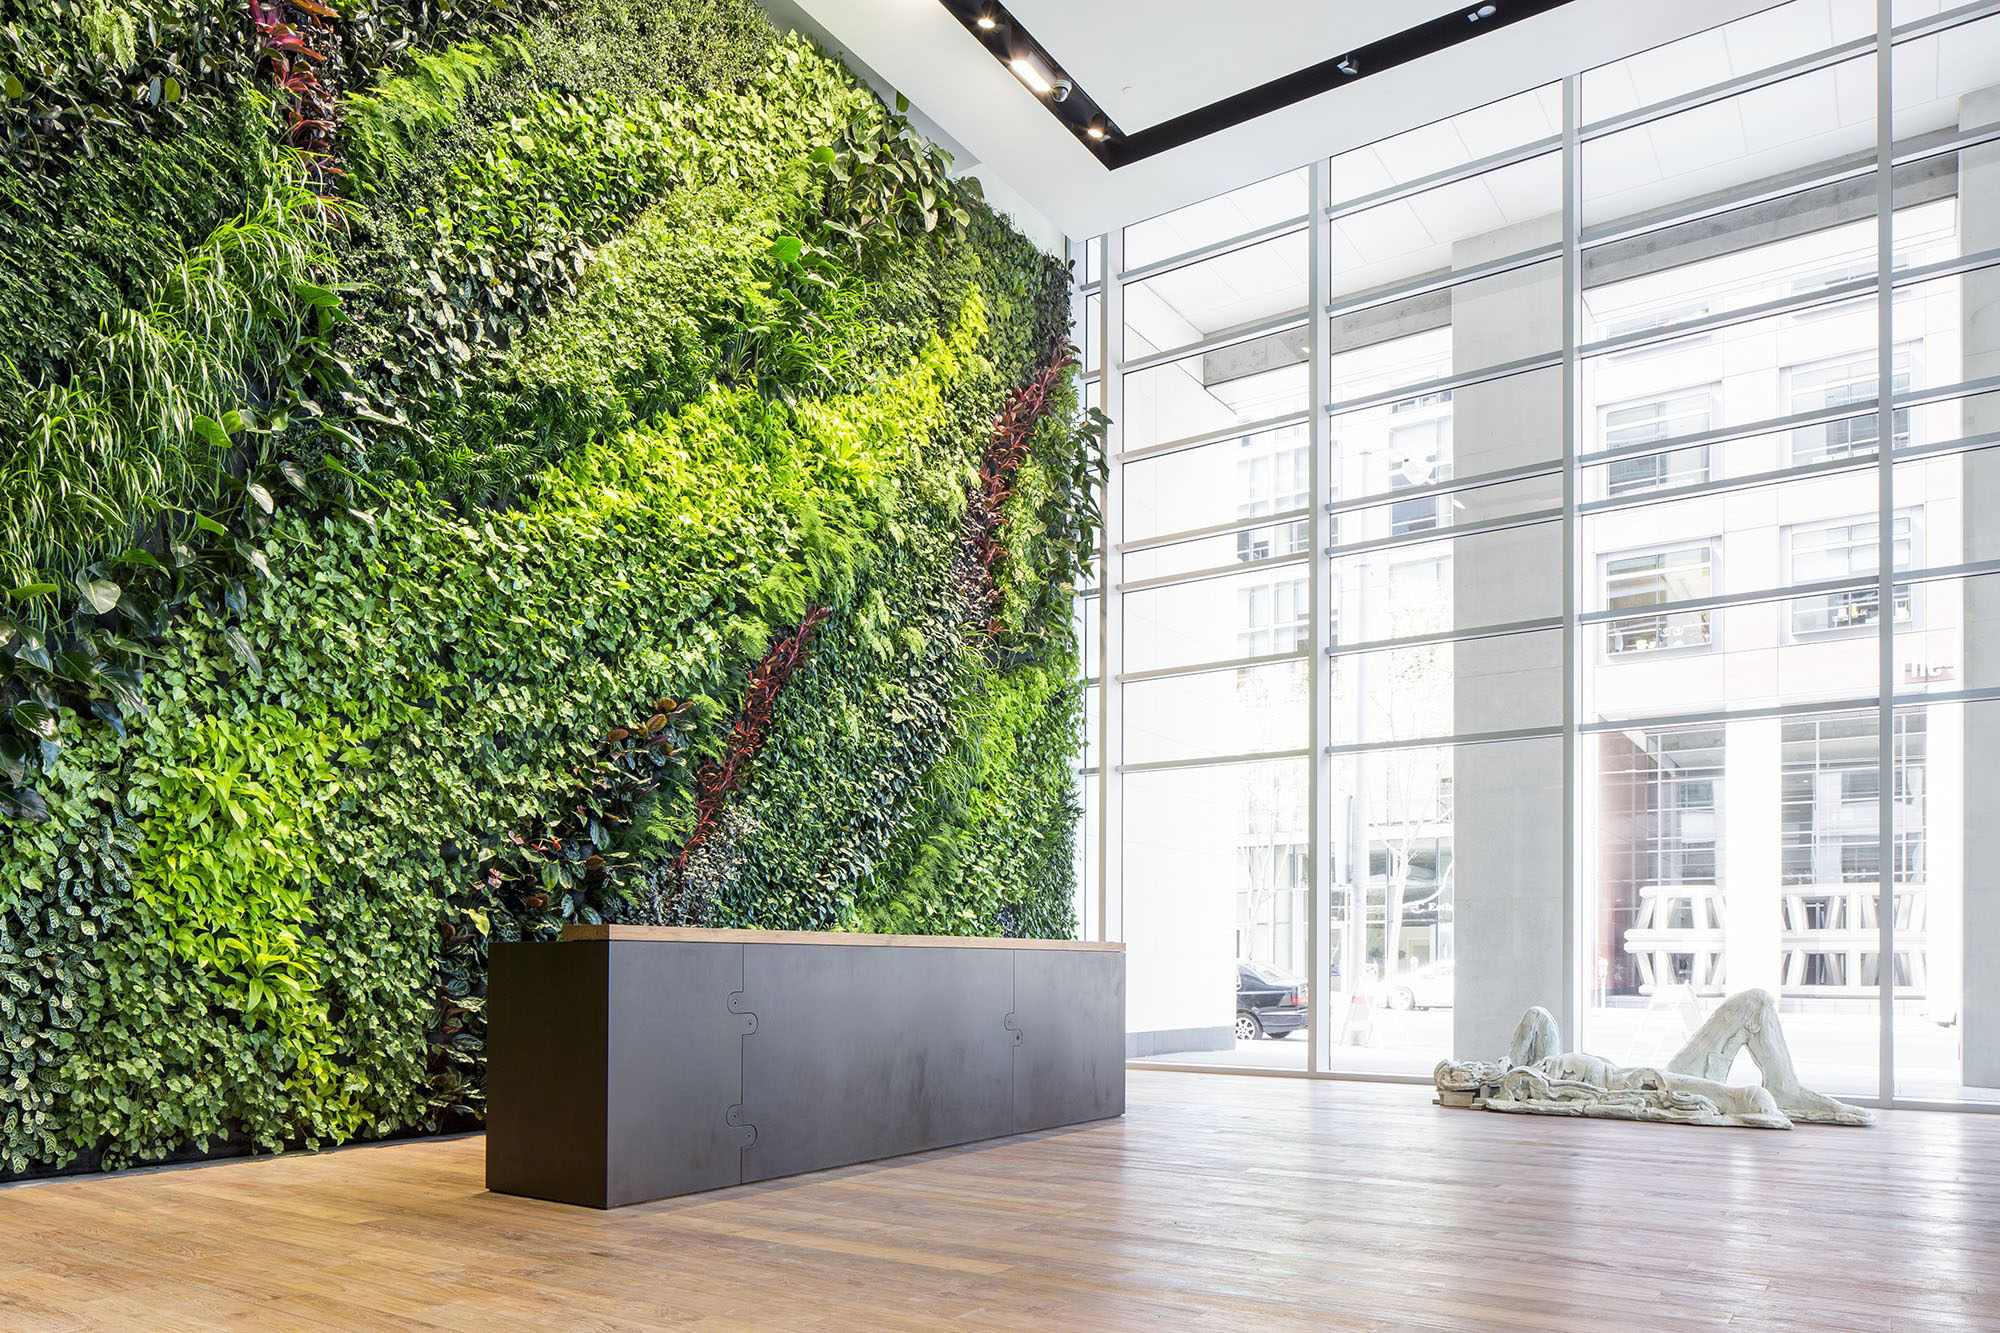 Beautiful two story plant wall behind the front desk.